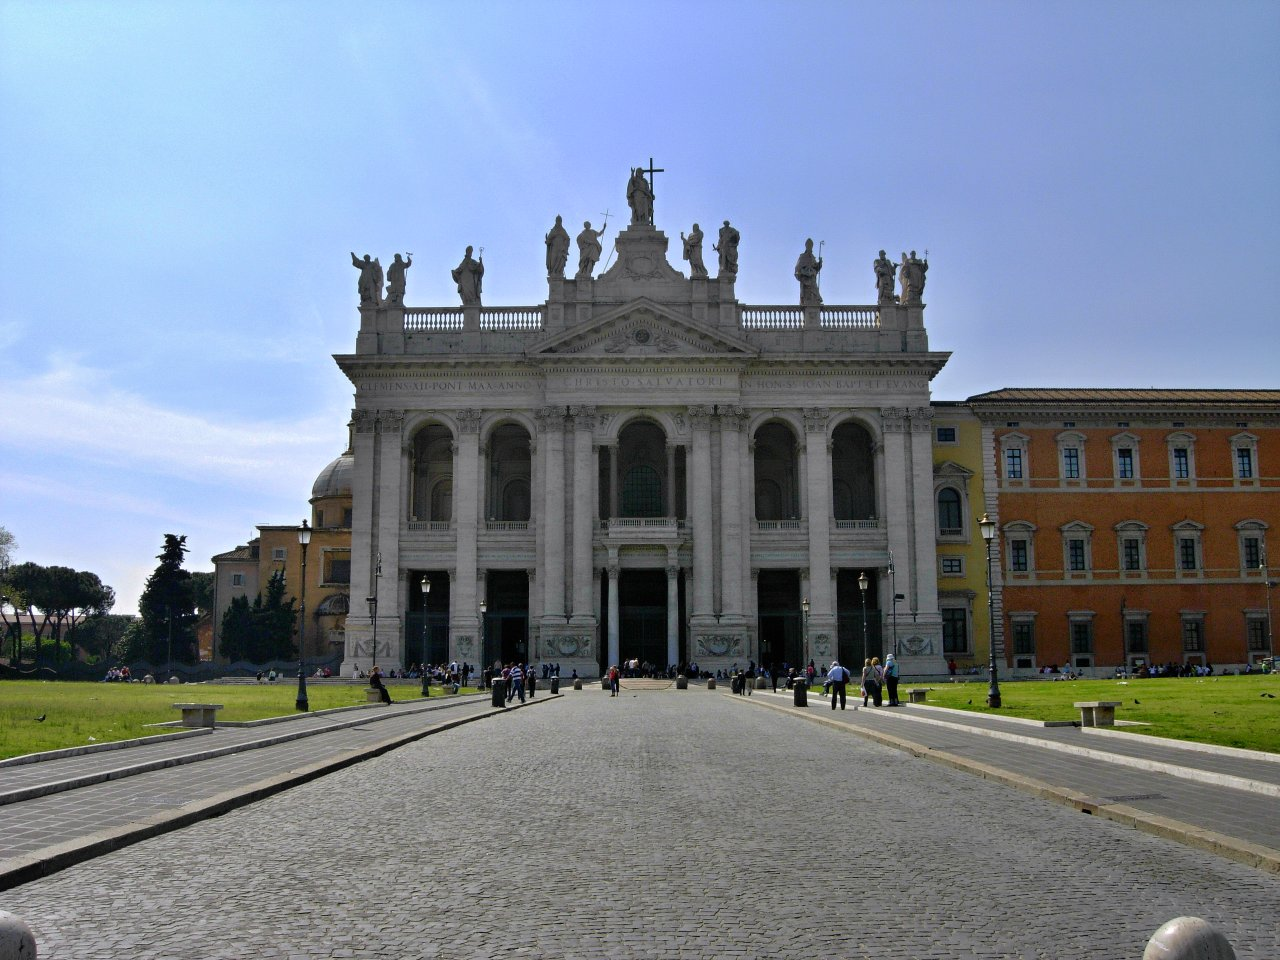 Basilica di San Giovanni in Laterano, Rome Attractions, Best Places to visit in Rome, Italy